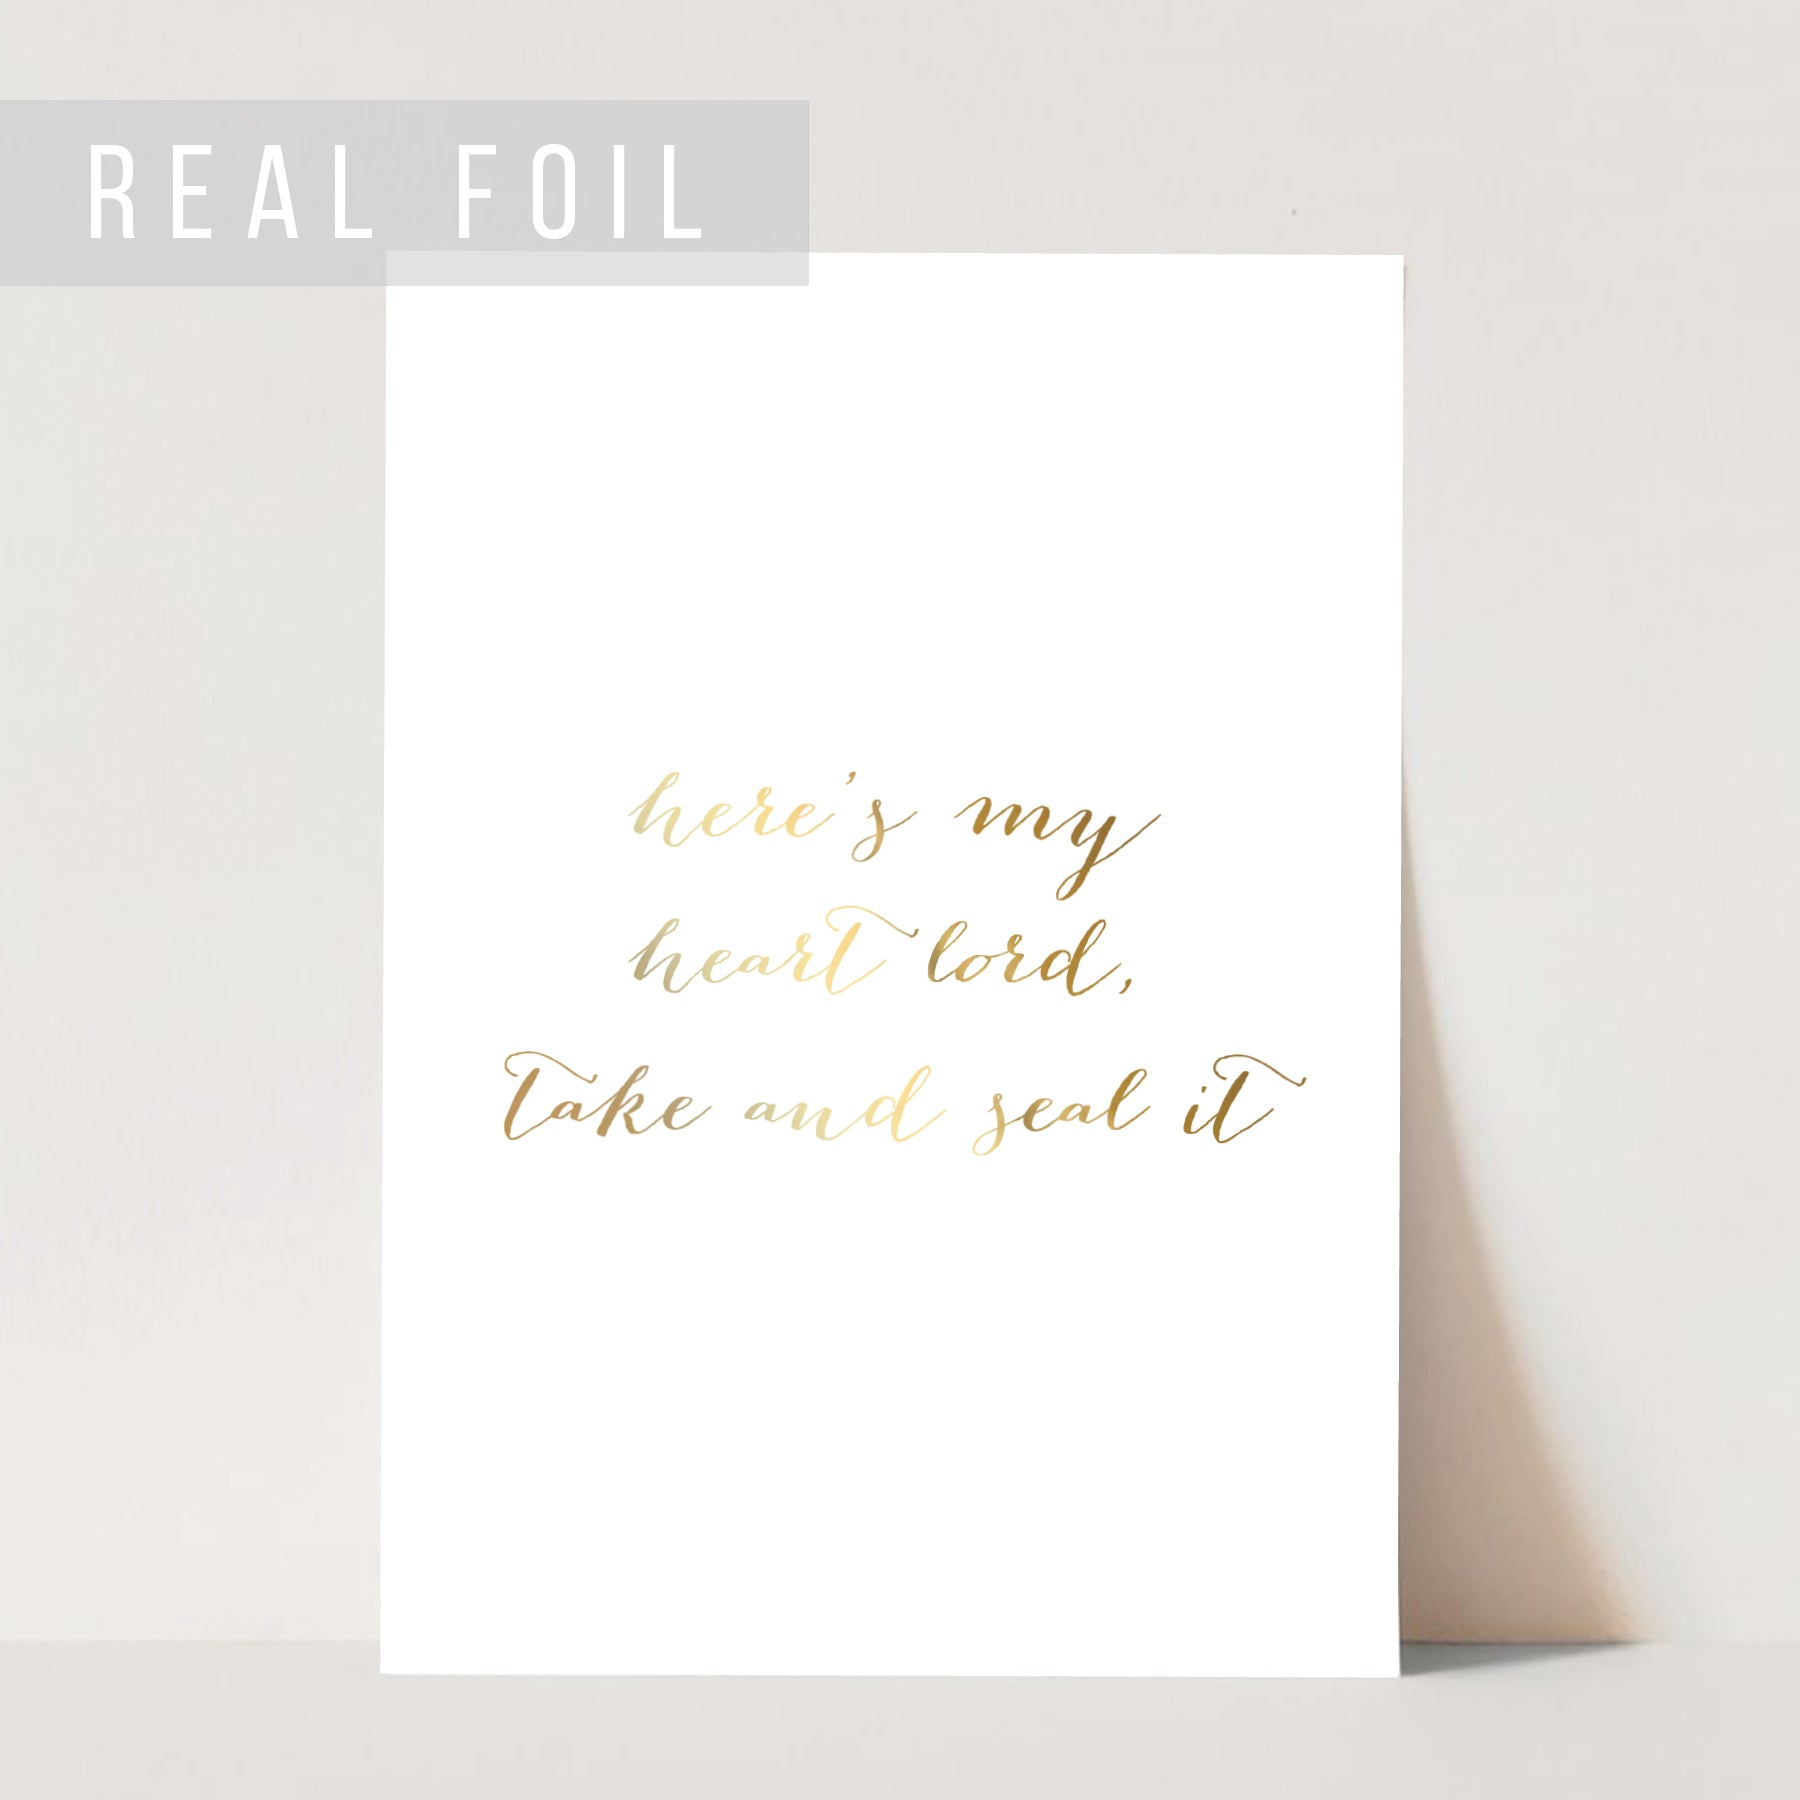 Here's My Heart Lord Take and Seal It Foiled Art Print